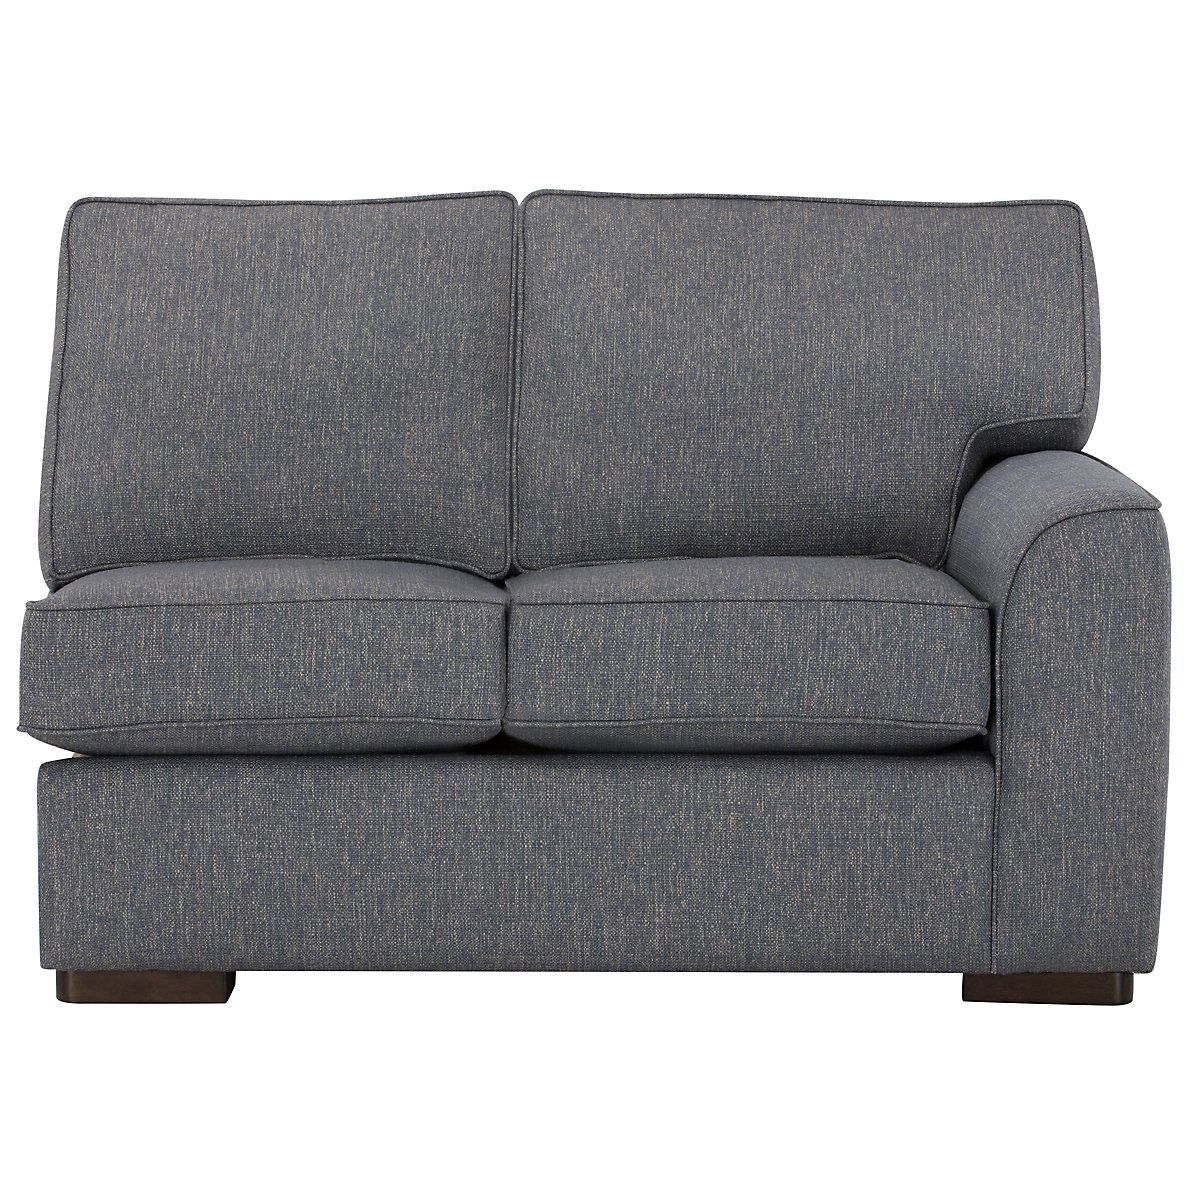 City Furniture Austin Blue Fabric Left Chaise Sectional - Austin sectional sofa